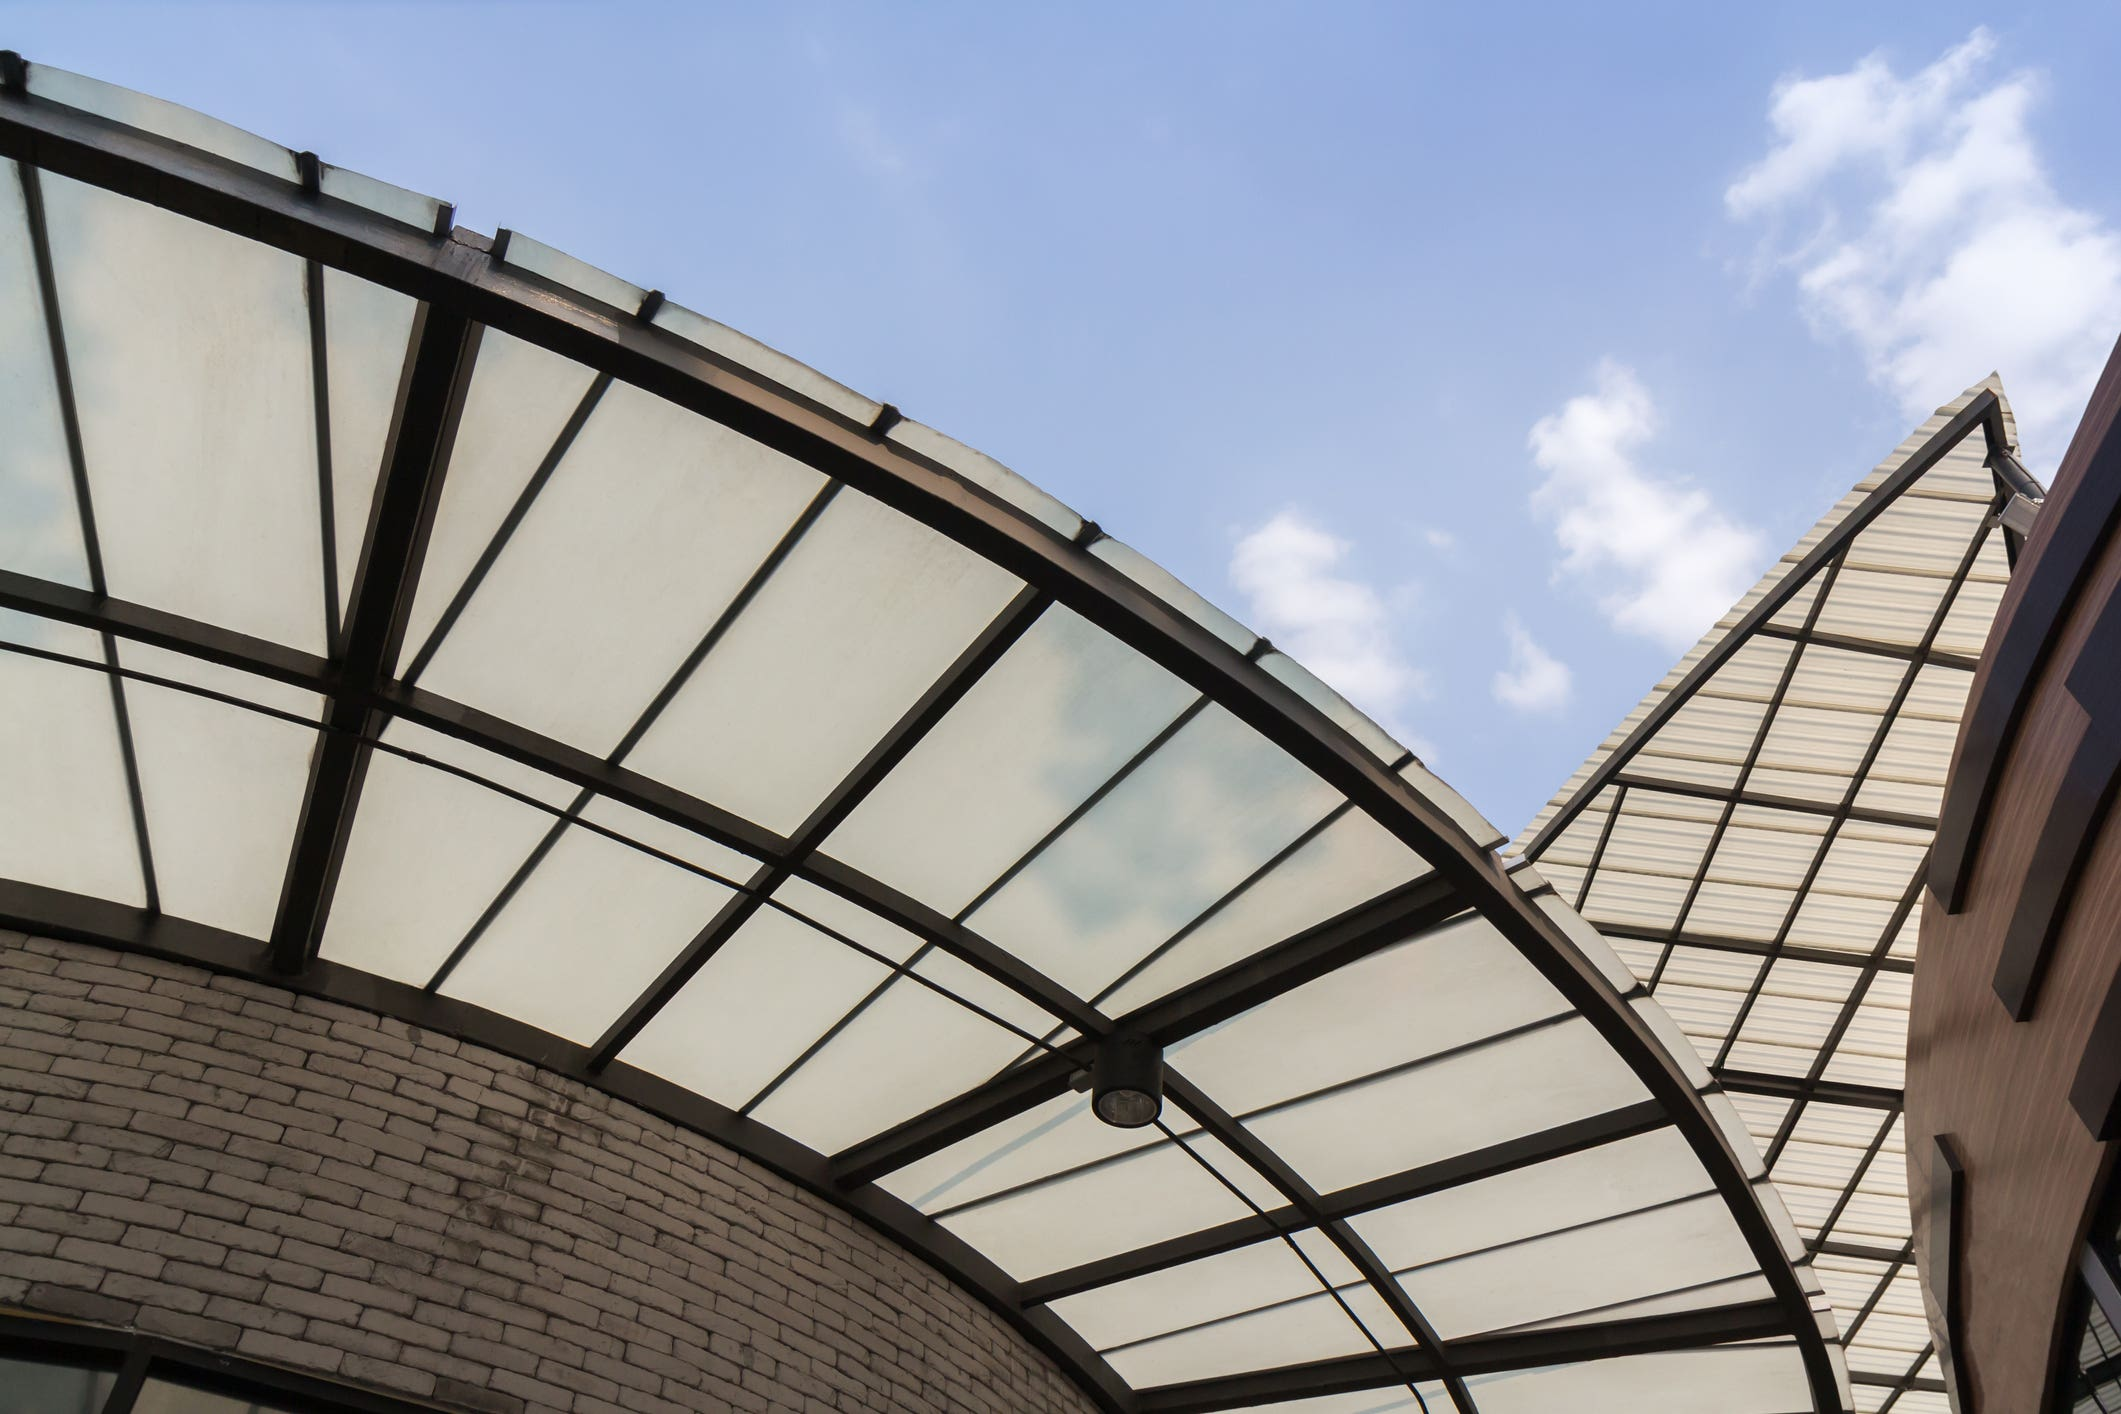 Translucent polycarbonate roofing